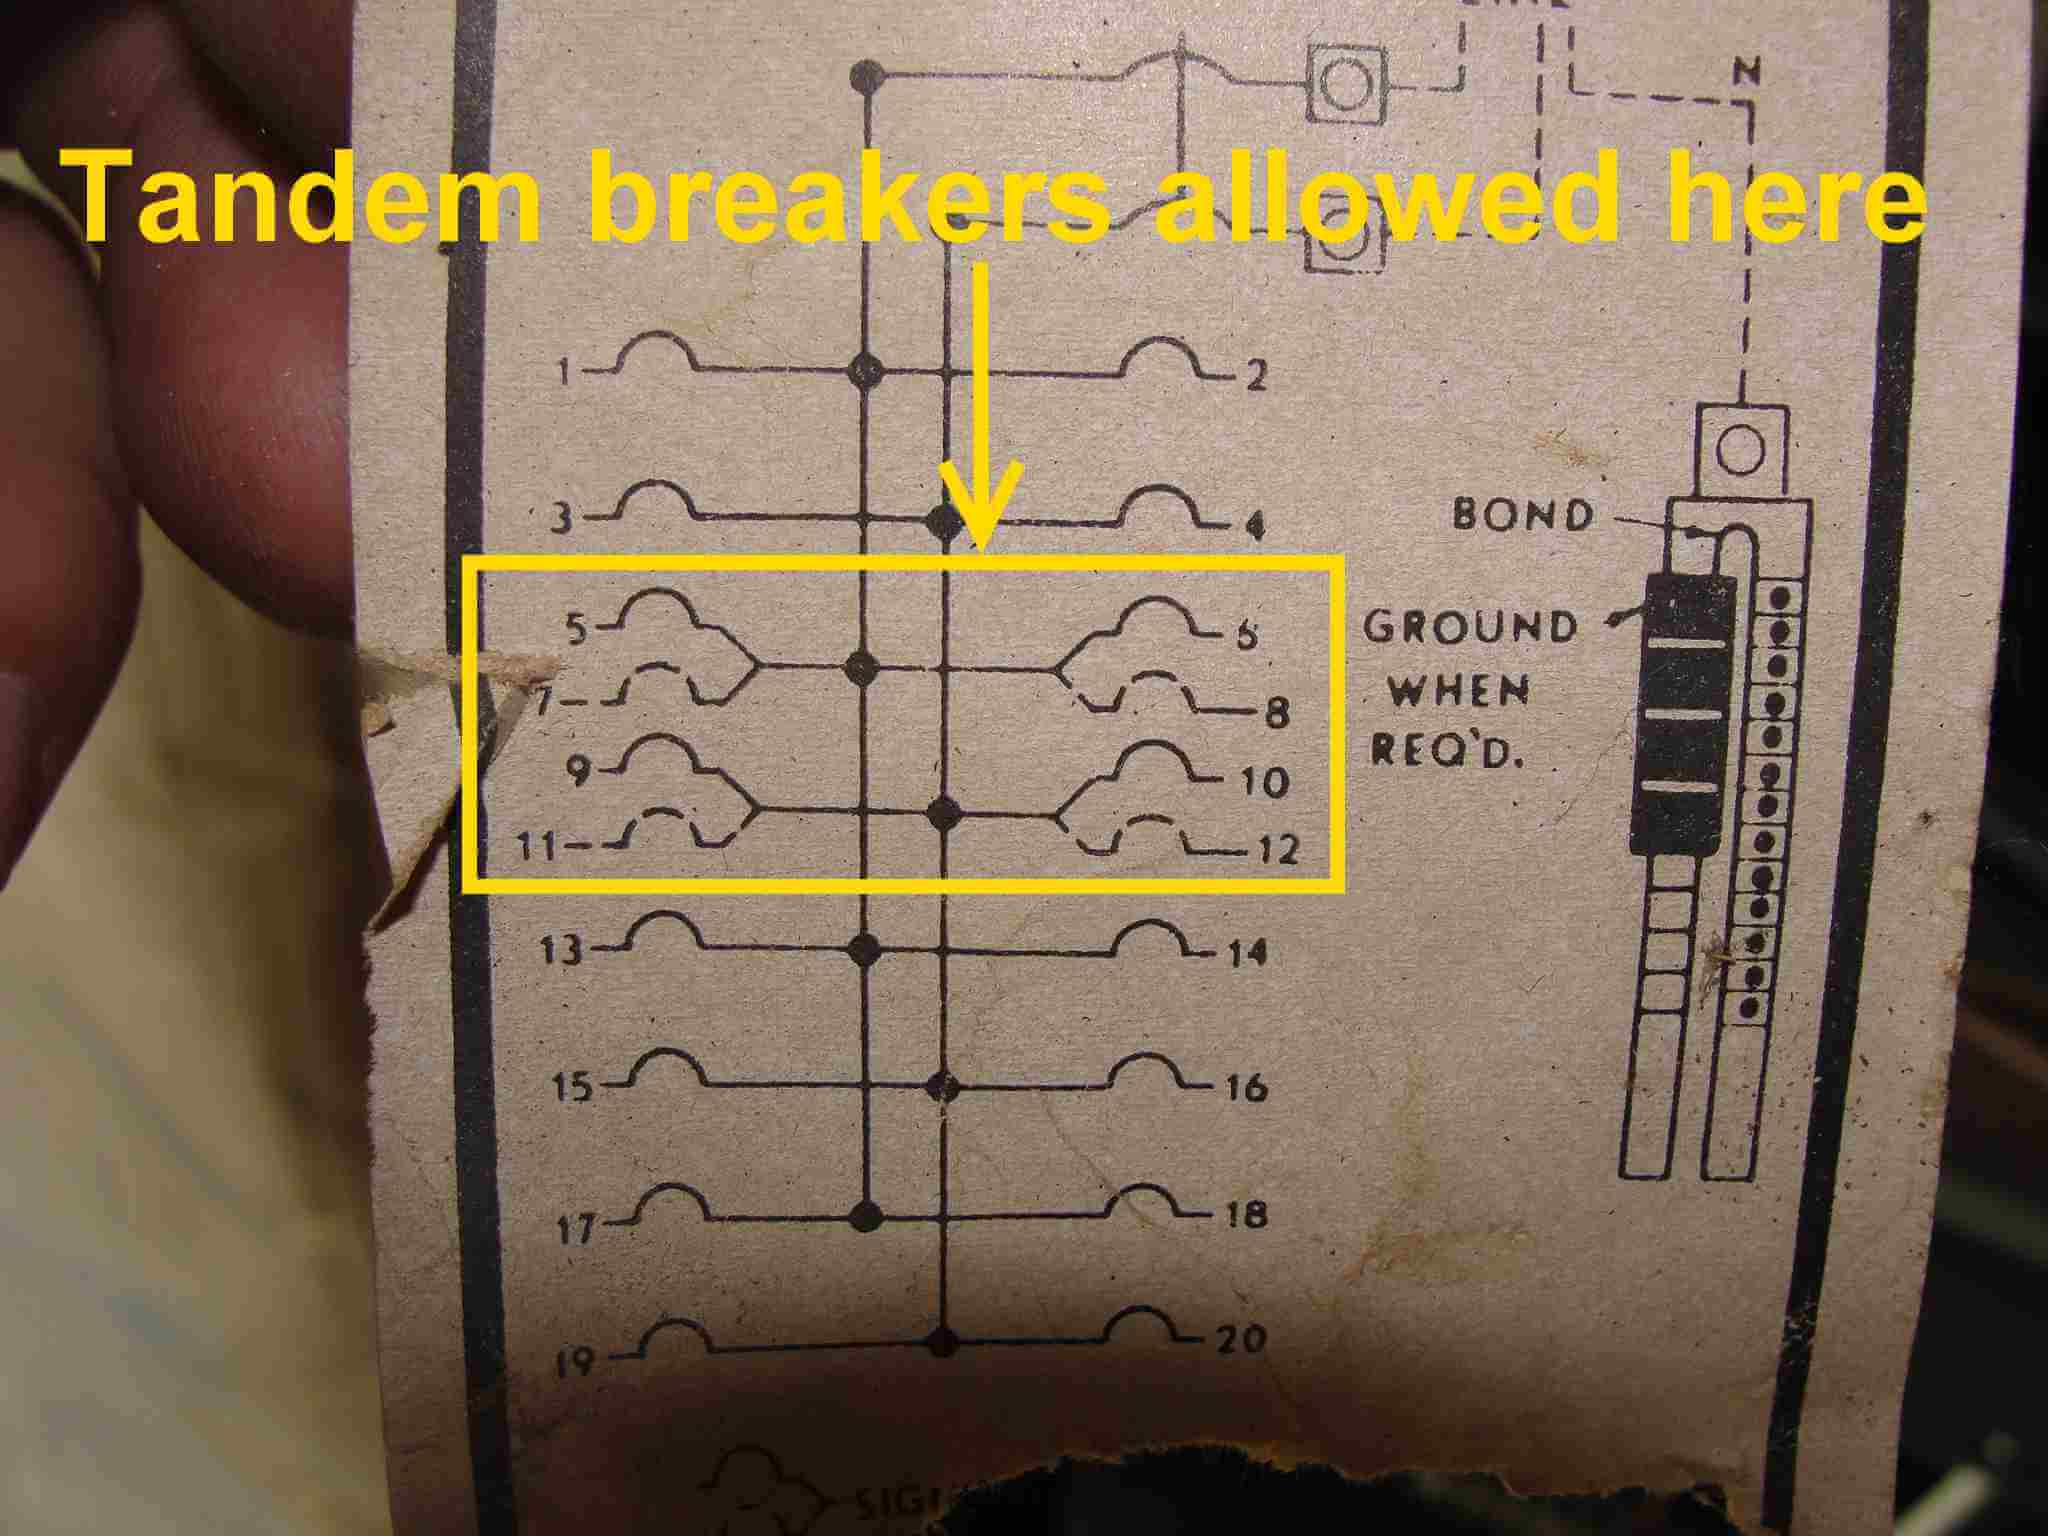 How To Know When Tandem Circuit Breakers Can Be Used Aka Cheater Two Way Electrical Switch Wiring Diagram Hd Walls Find Wallpapers Panelboard 2